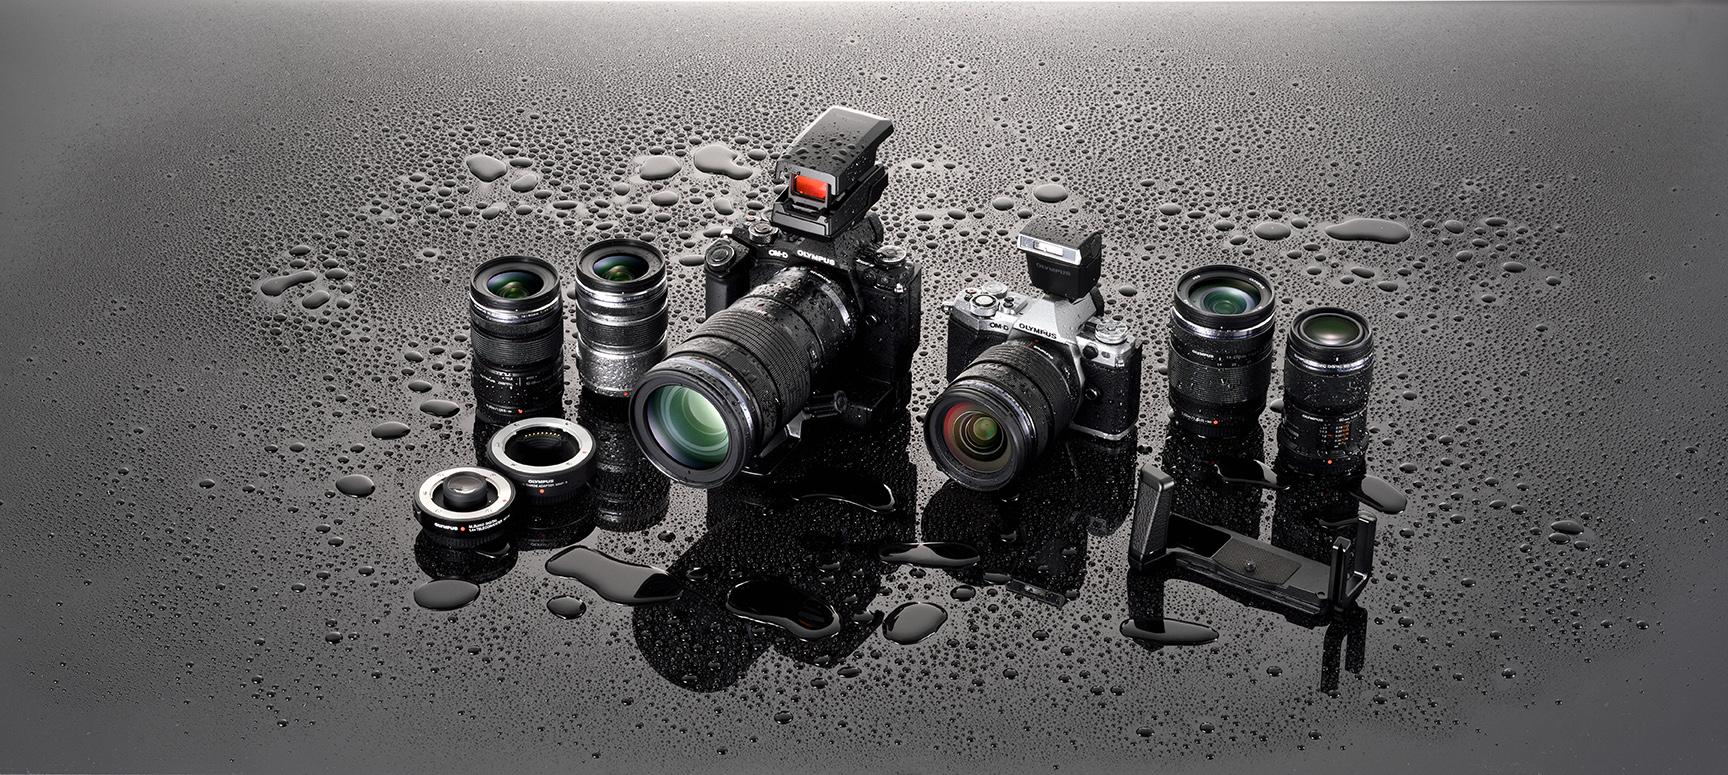 Olympus OM-D E-M5 Mark II Dustproof, Splashproof